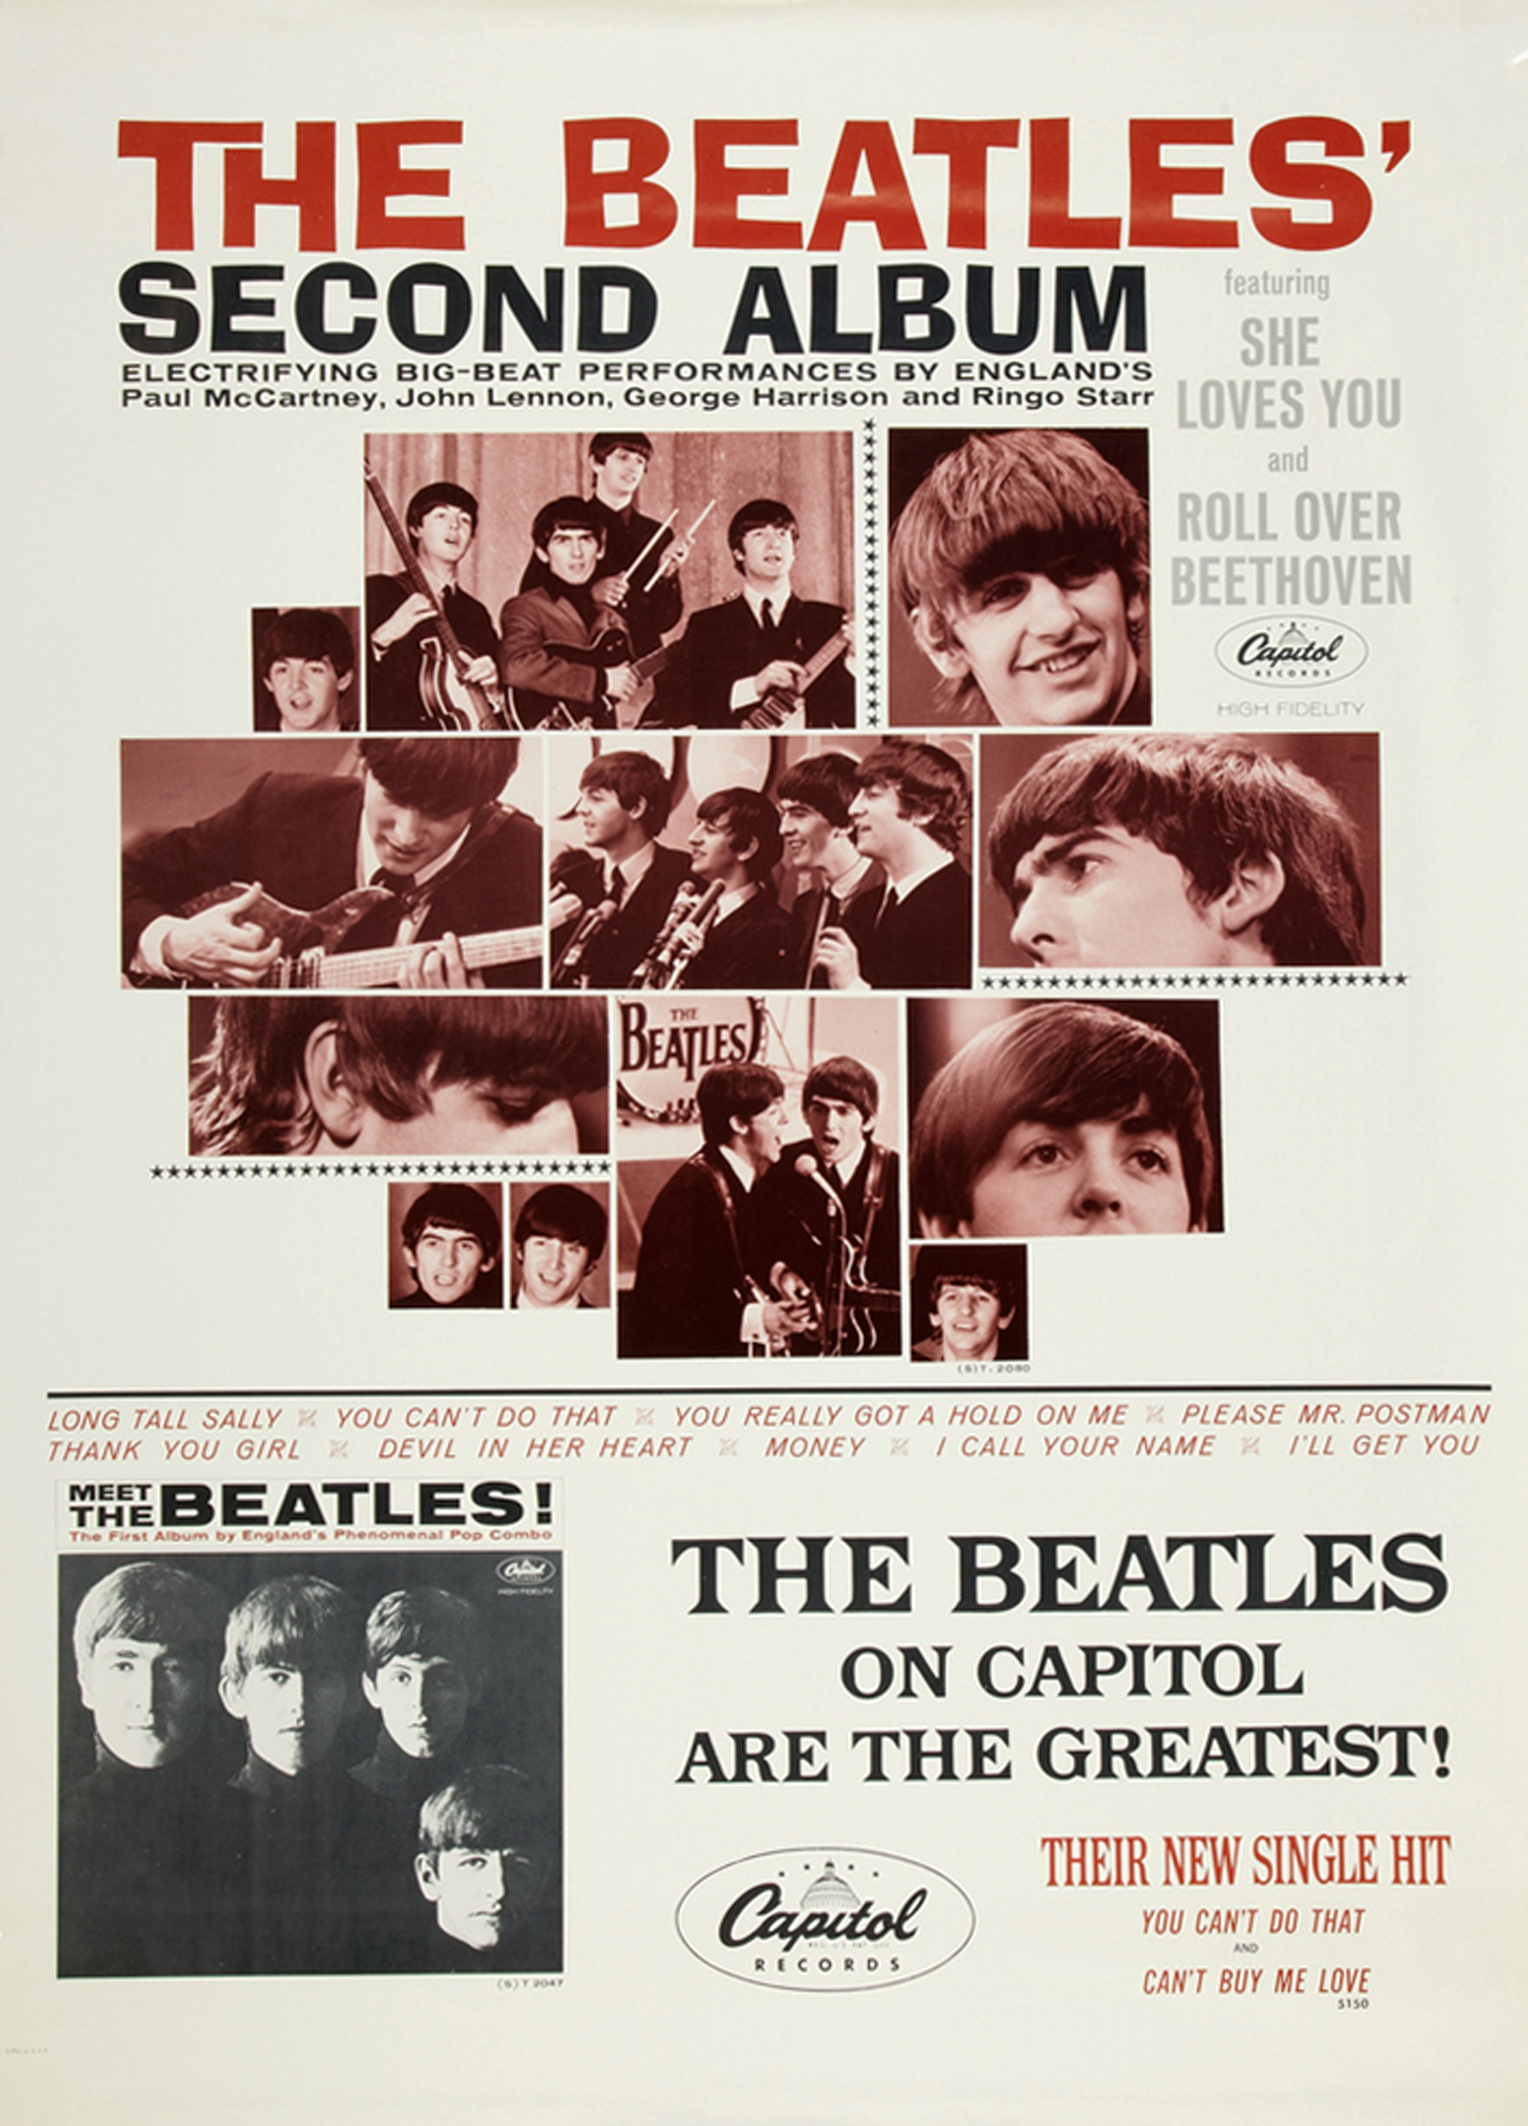 The Beatles Second Album Promotional Display (Capitol, 1964)